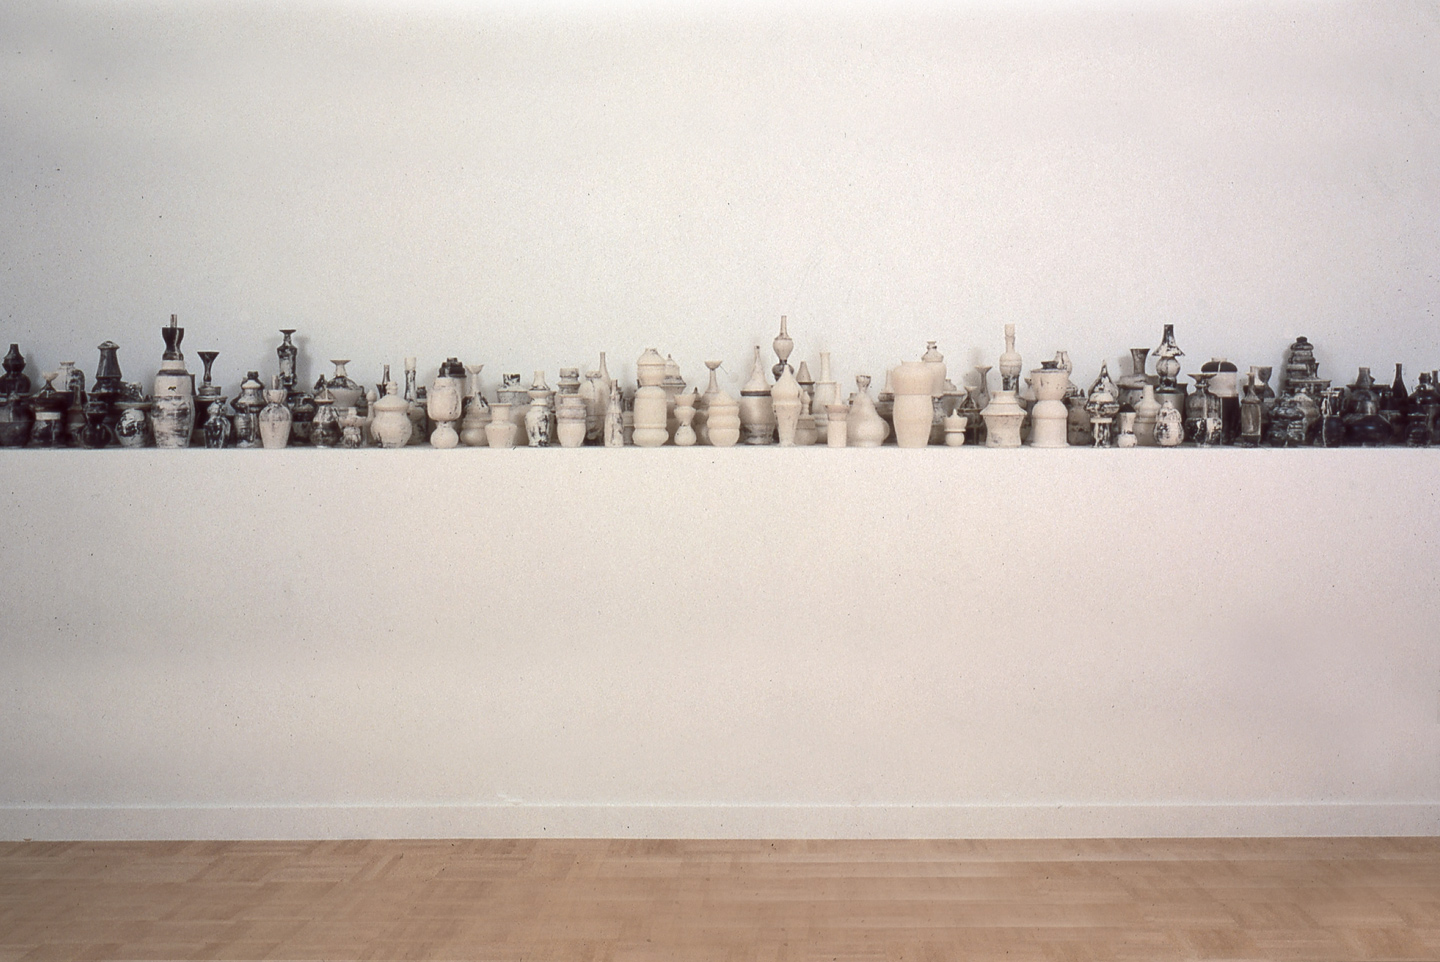 Building  ,  2003. Cast, reconstructed, glazed, fired porcelain. 23 foot installation.